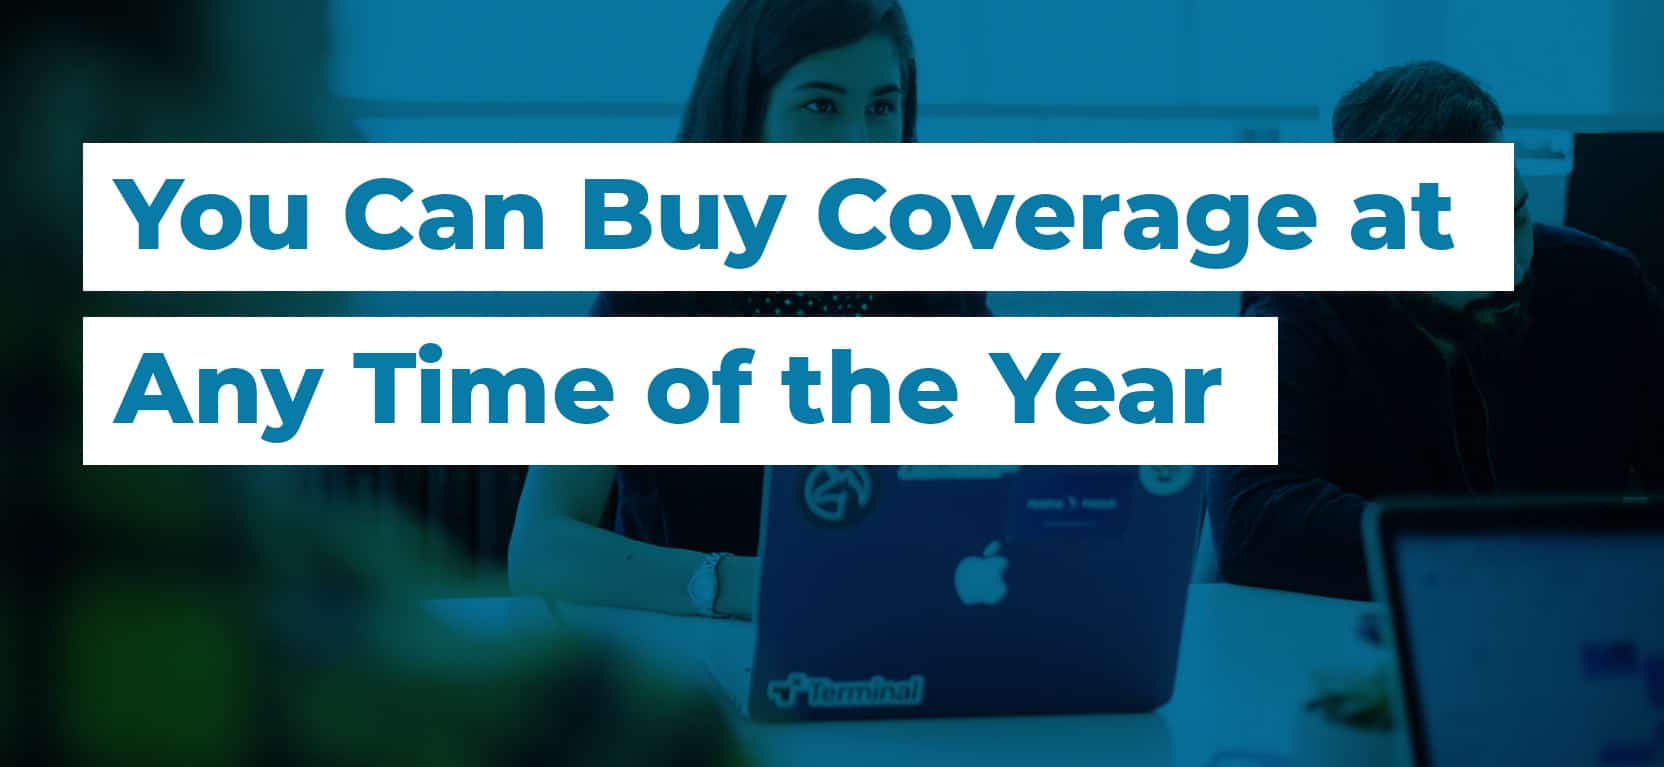 56 You Can Buy Coverage at Any Time of the Year3